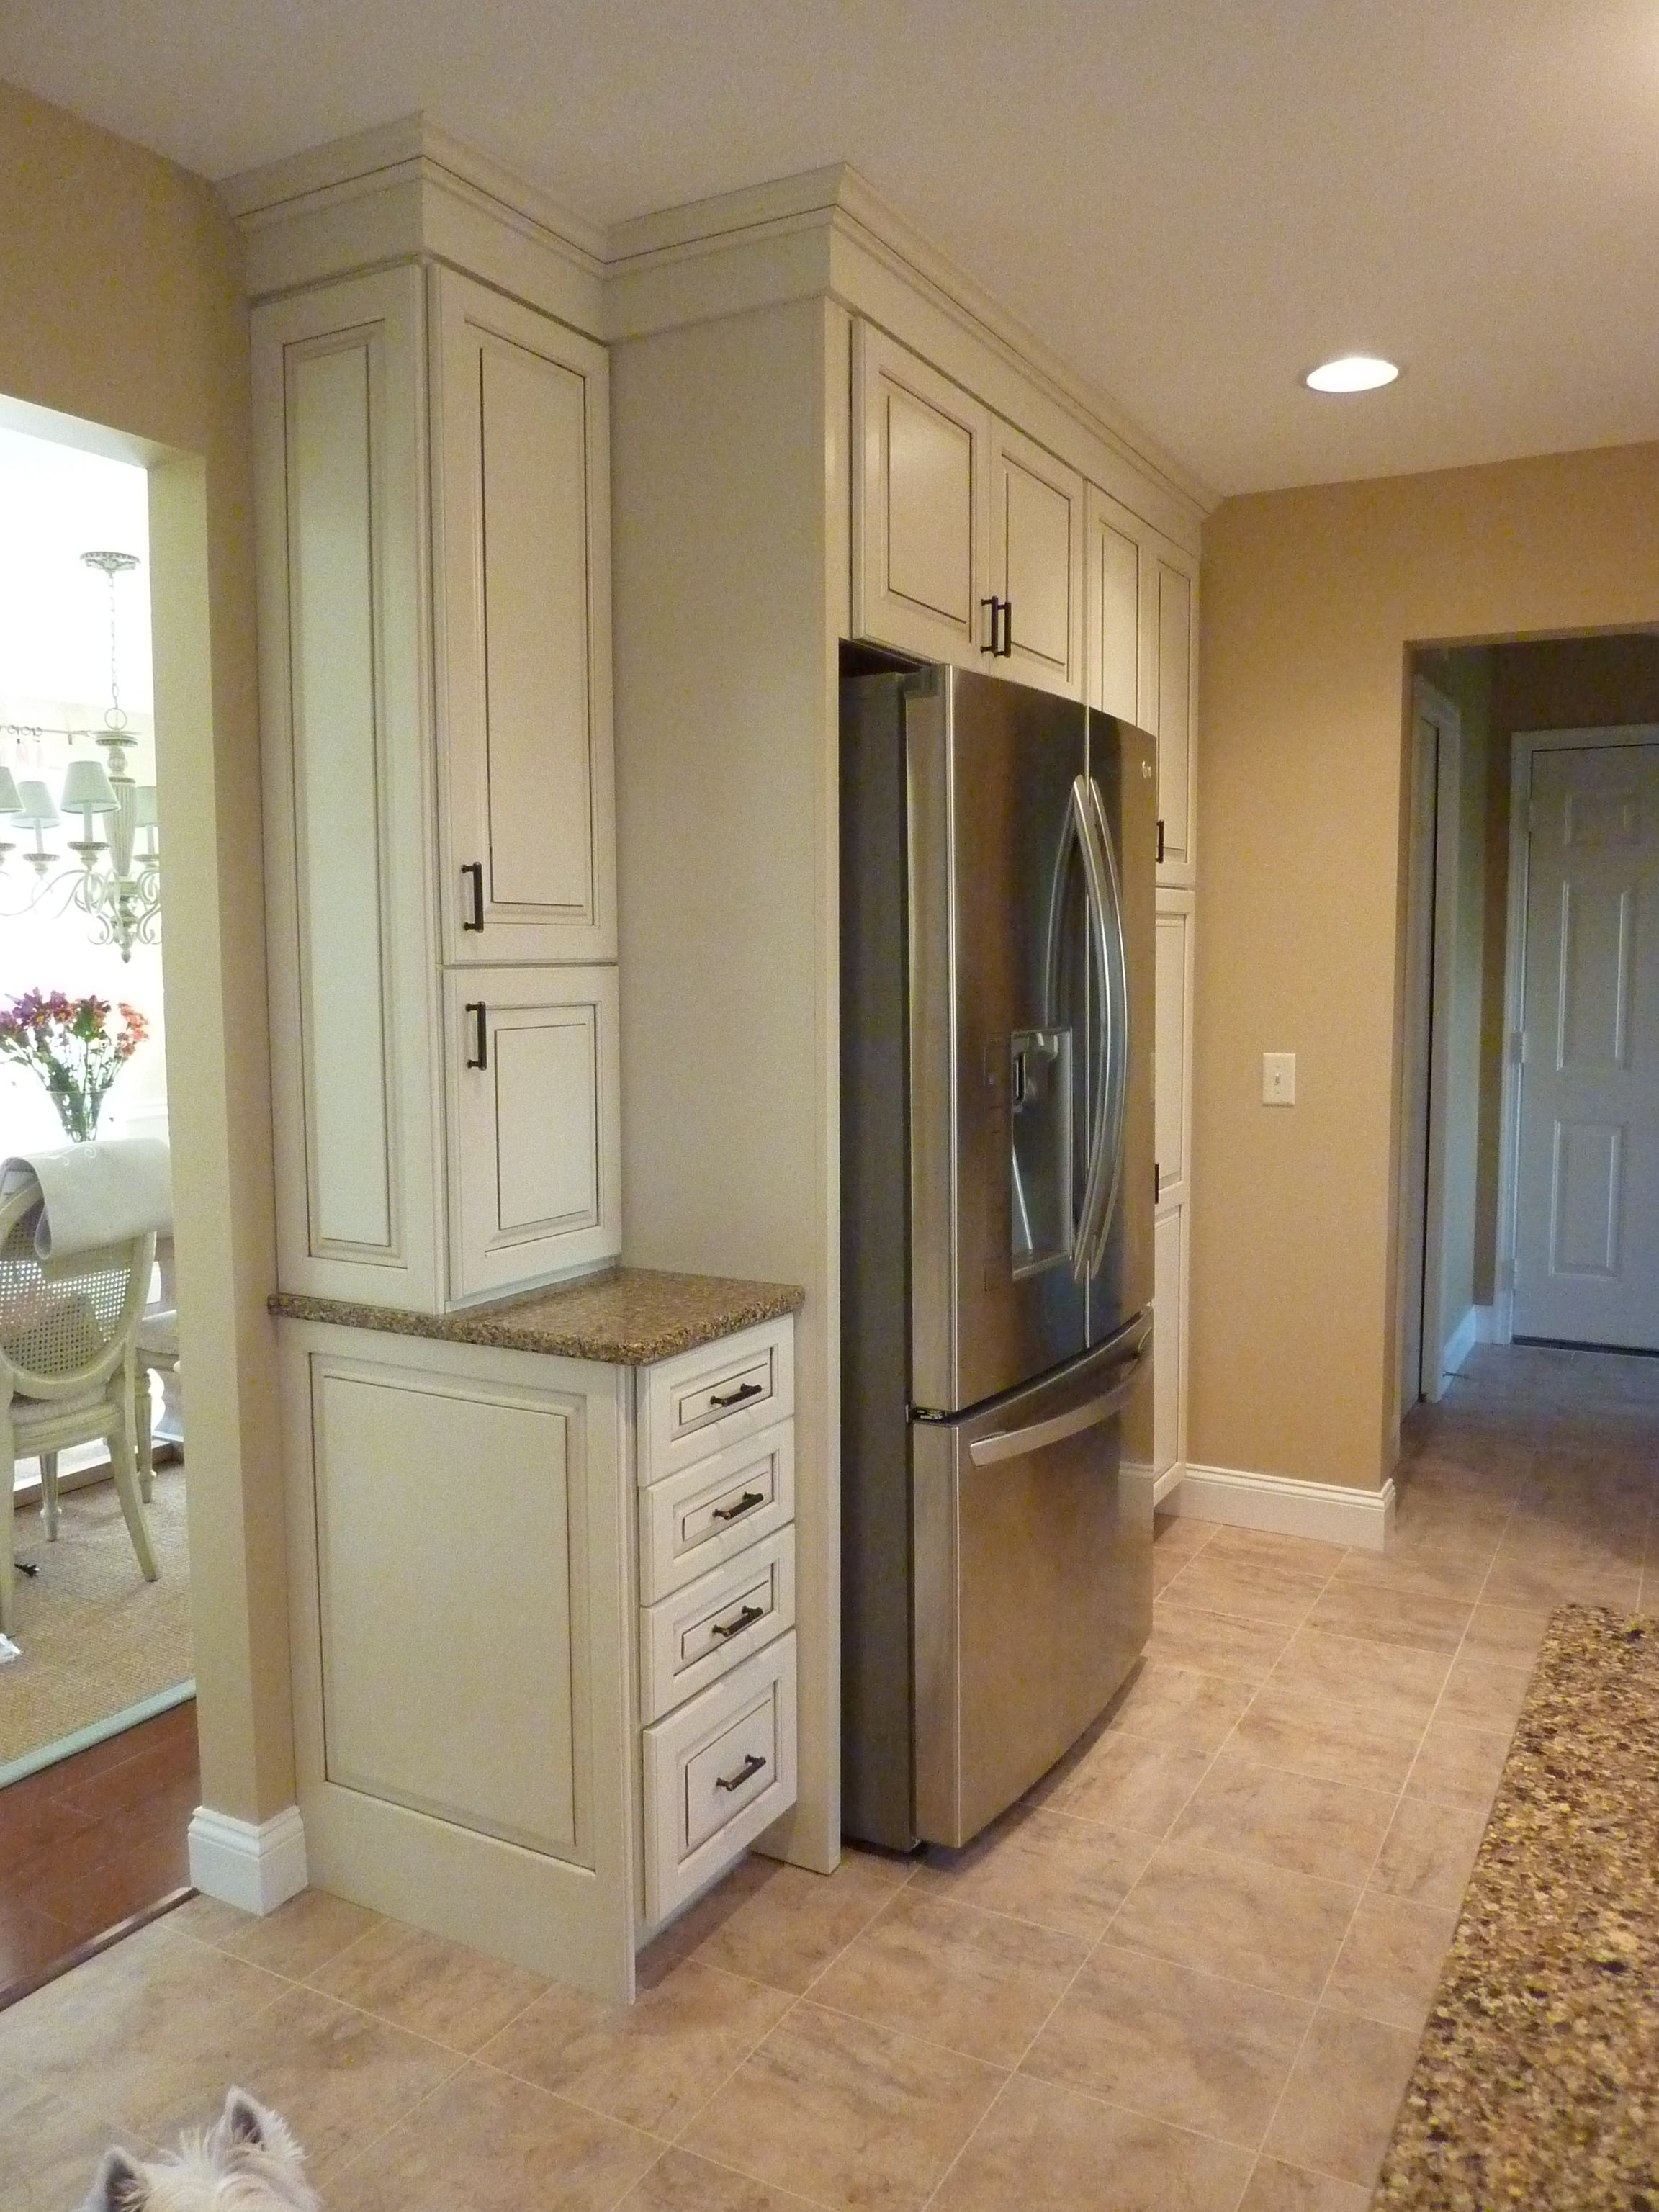 Kraftmaid Cabinet Sizes Kraftmaid Offwhite Cabinets With A Glaze Build In The